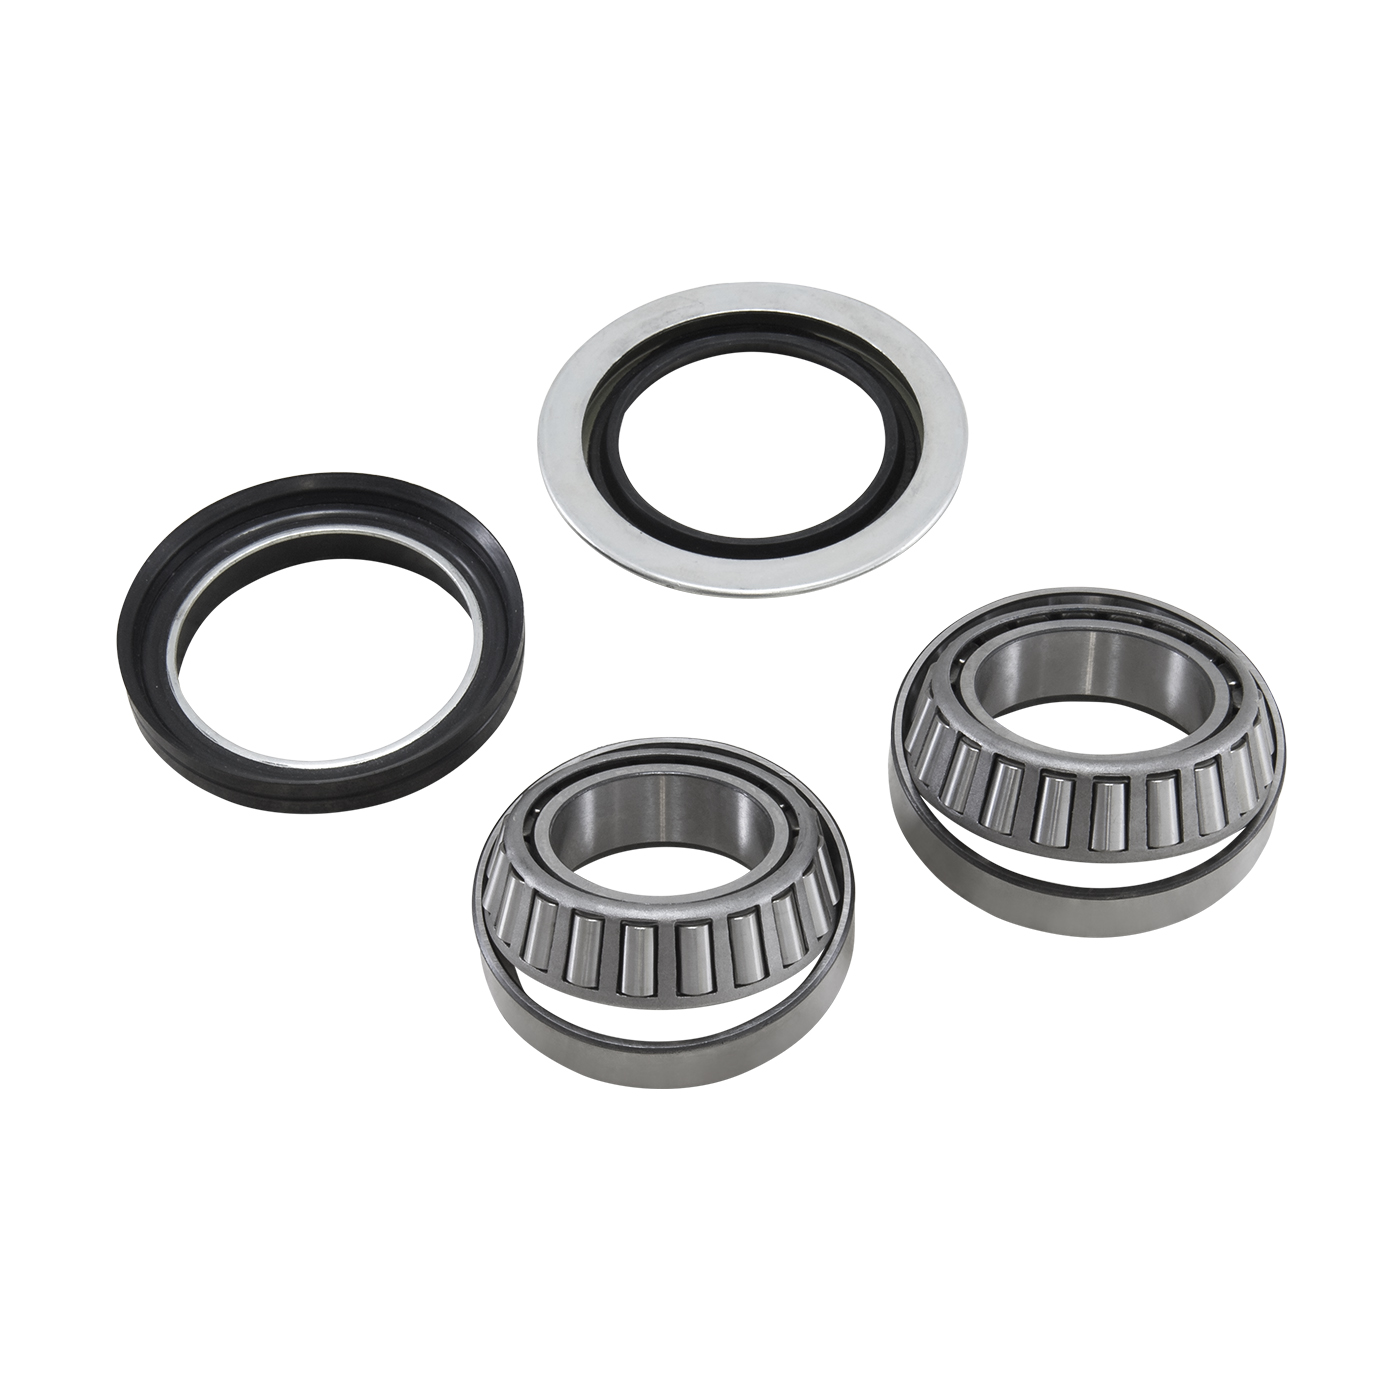 AK F-F03 - Yukon Front Axle Bearing and Seal Kit for Dana 44